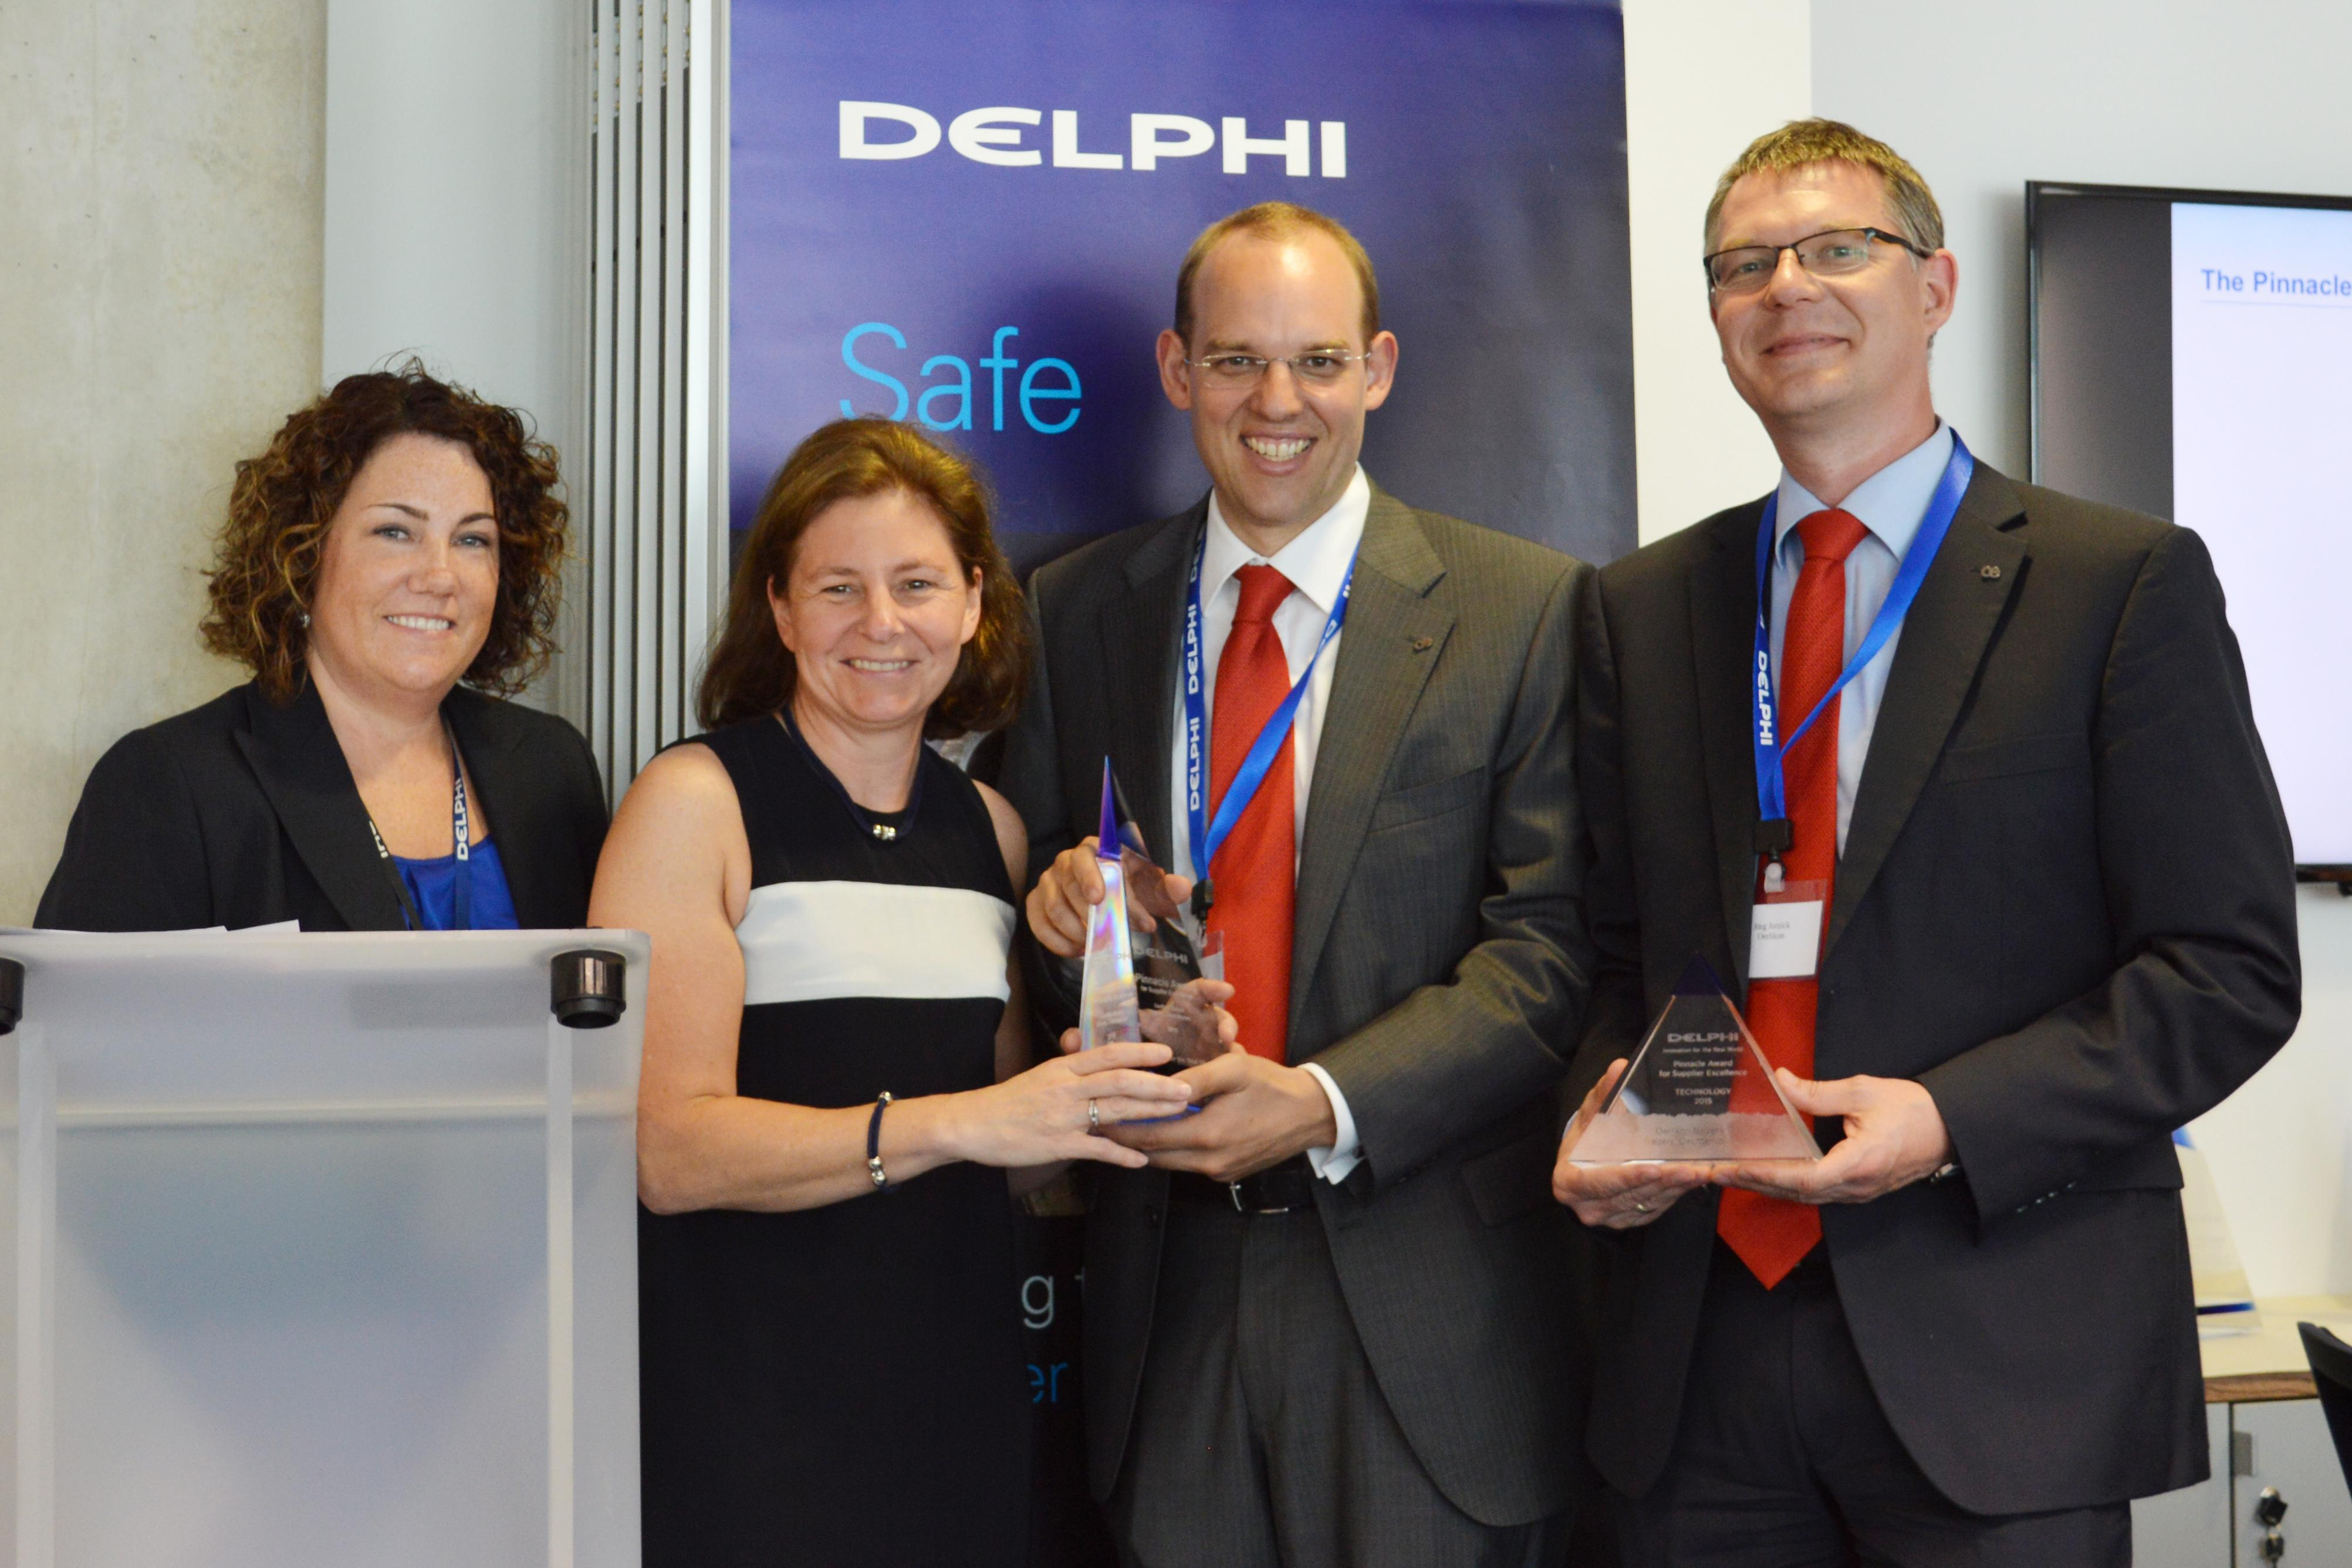 Pinnacle Award 2015 from Delphi Automotive